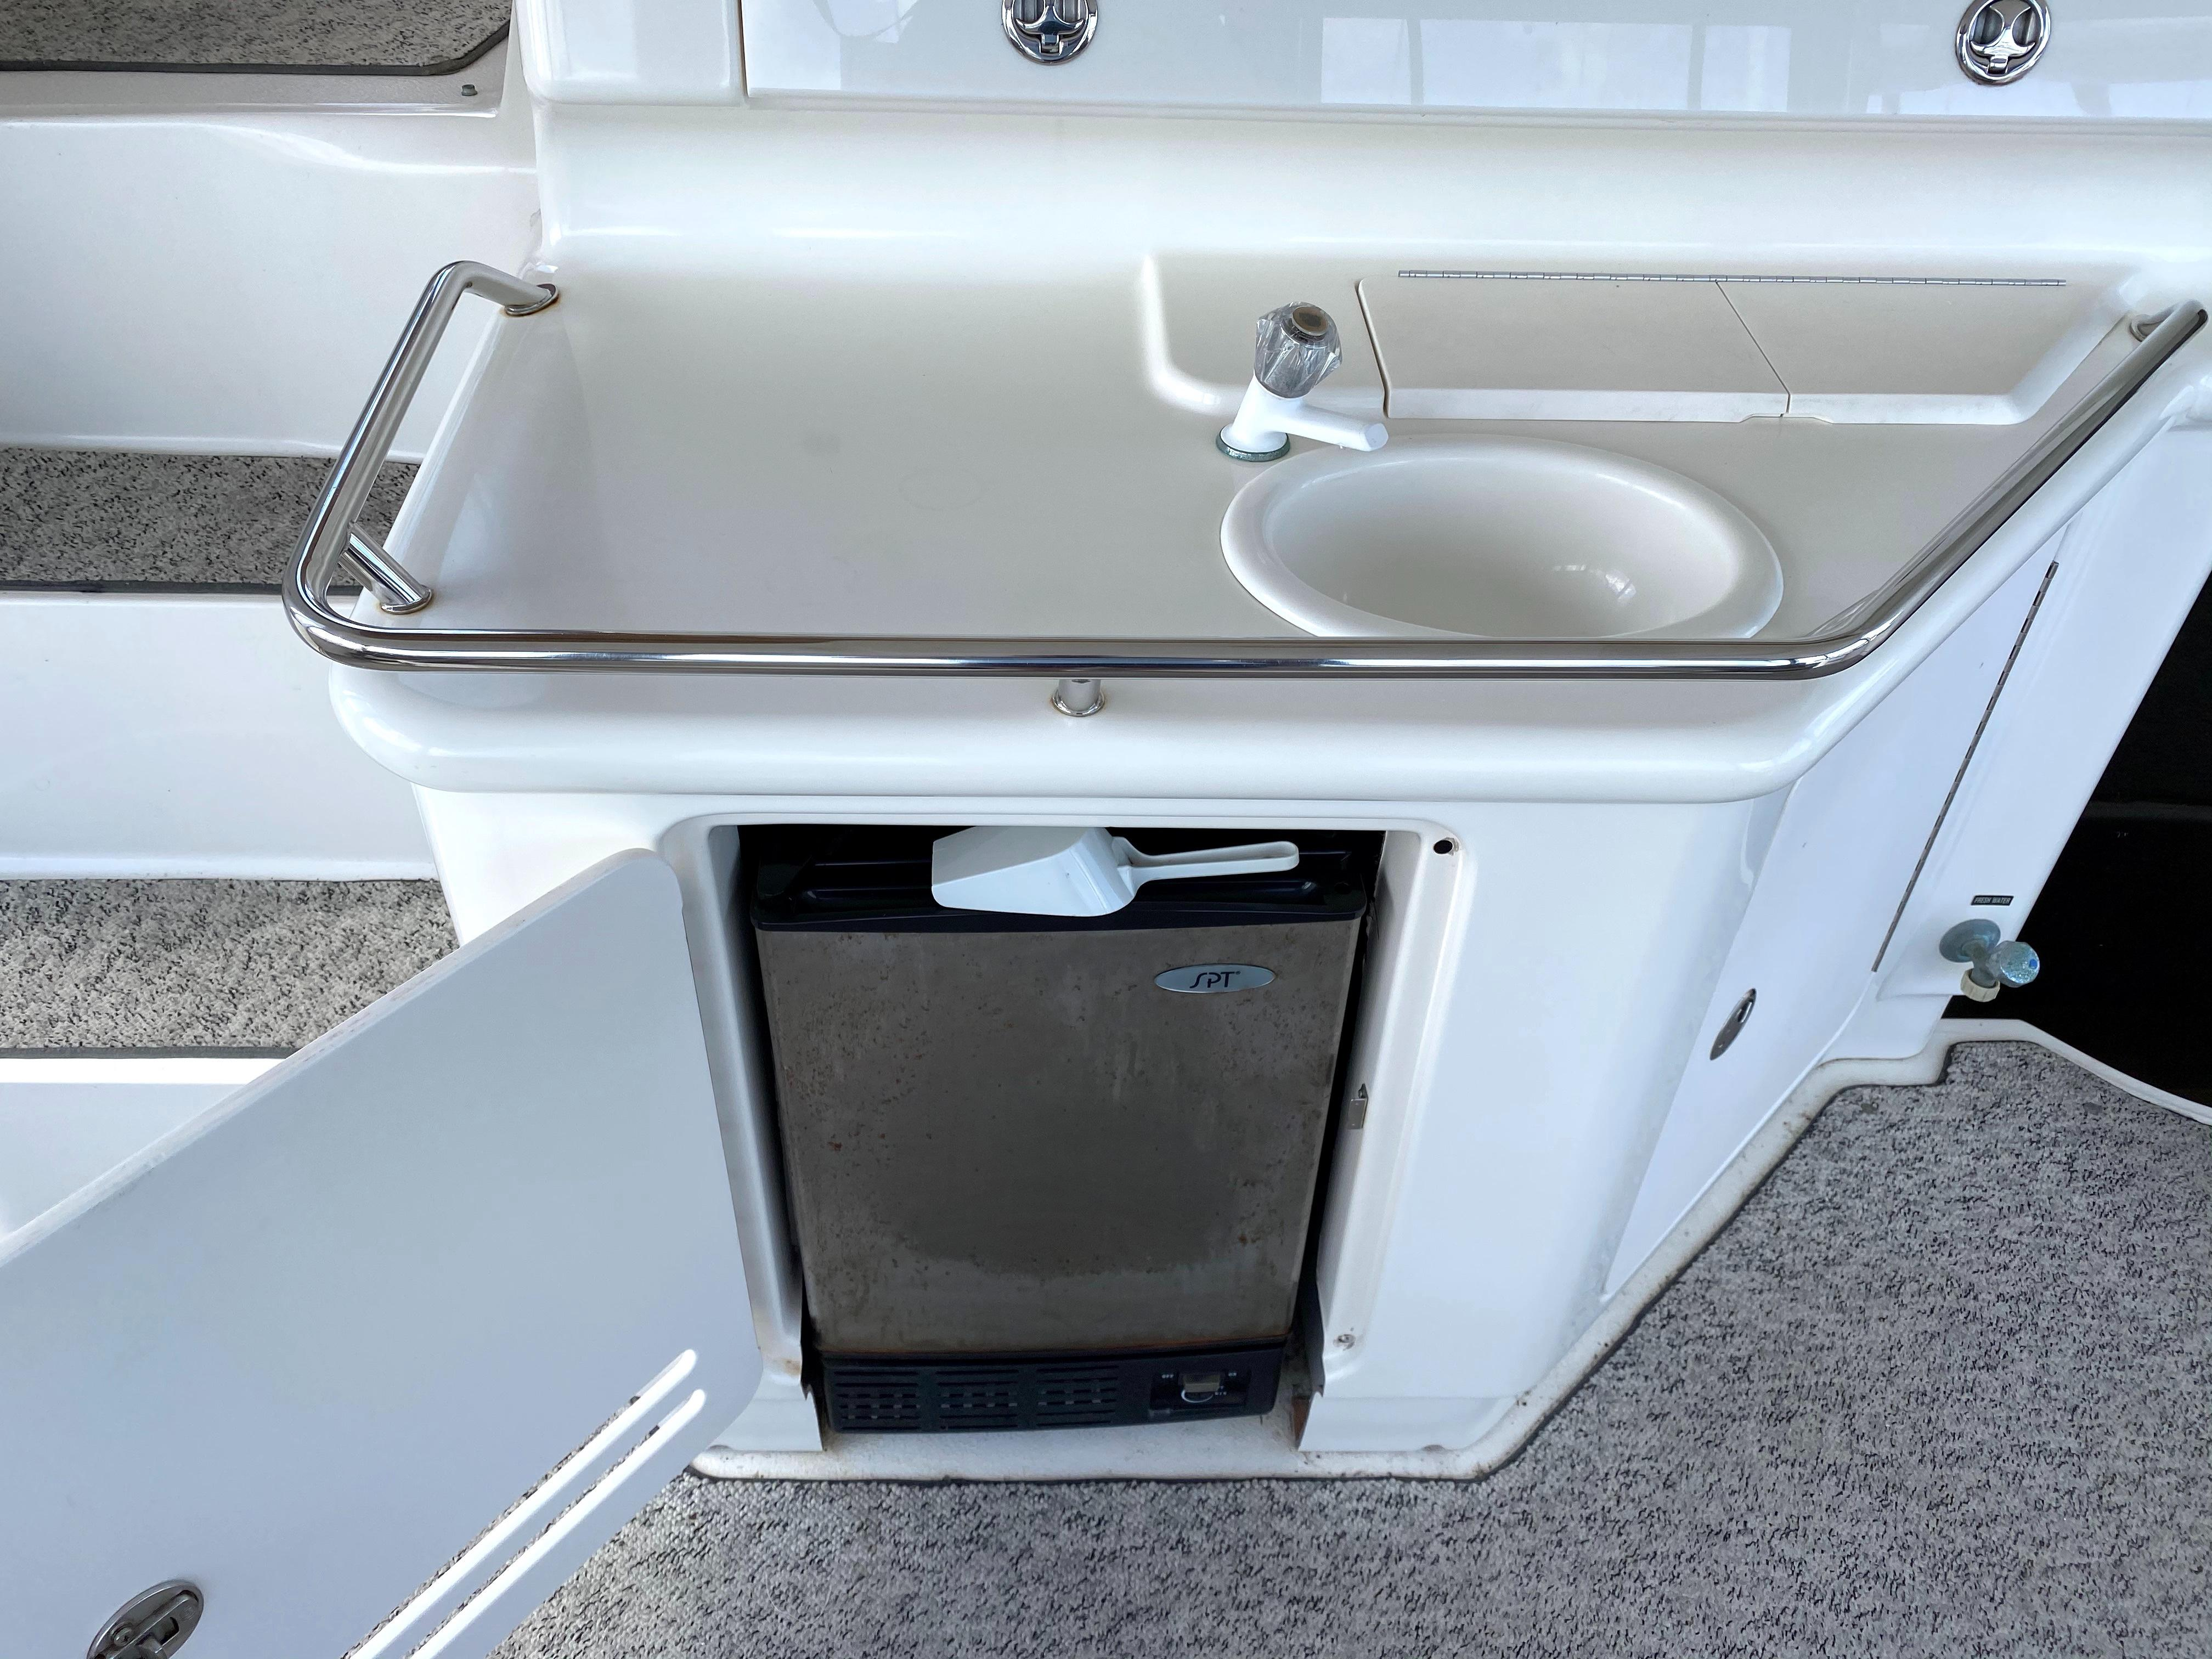 Sea Ray 370 Aft Cabin - sink and ice maker